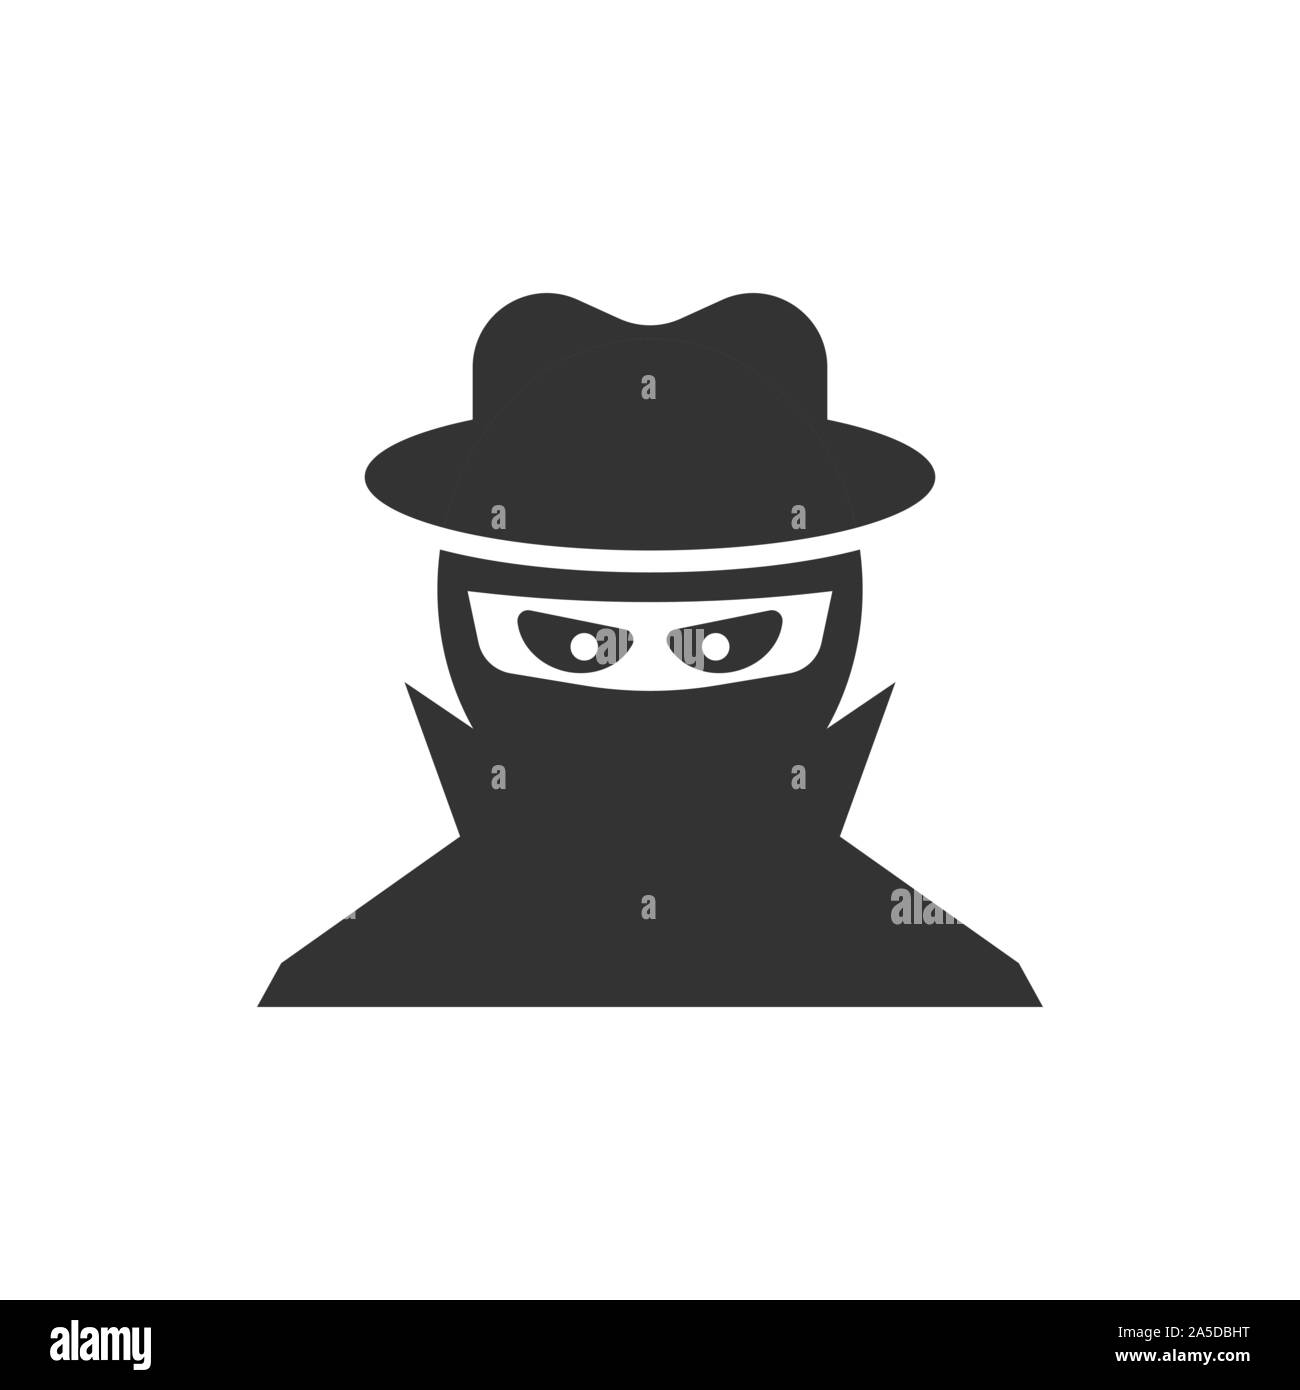 Fraud Hacker Icon In Flat Style Spy Vector Illustration On Isolated Background Cyber Defend Business Concept Stock Vector Image Art Alamy